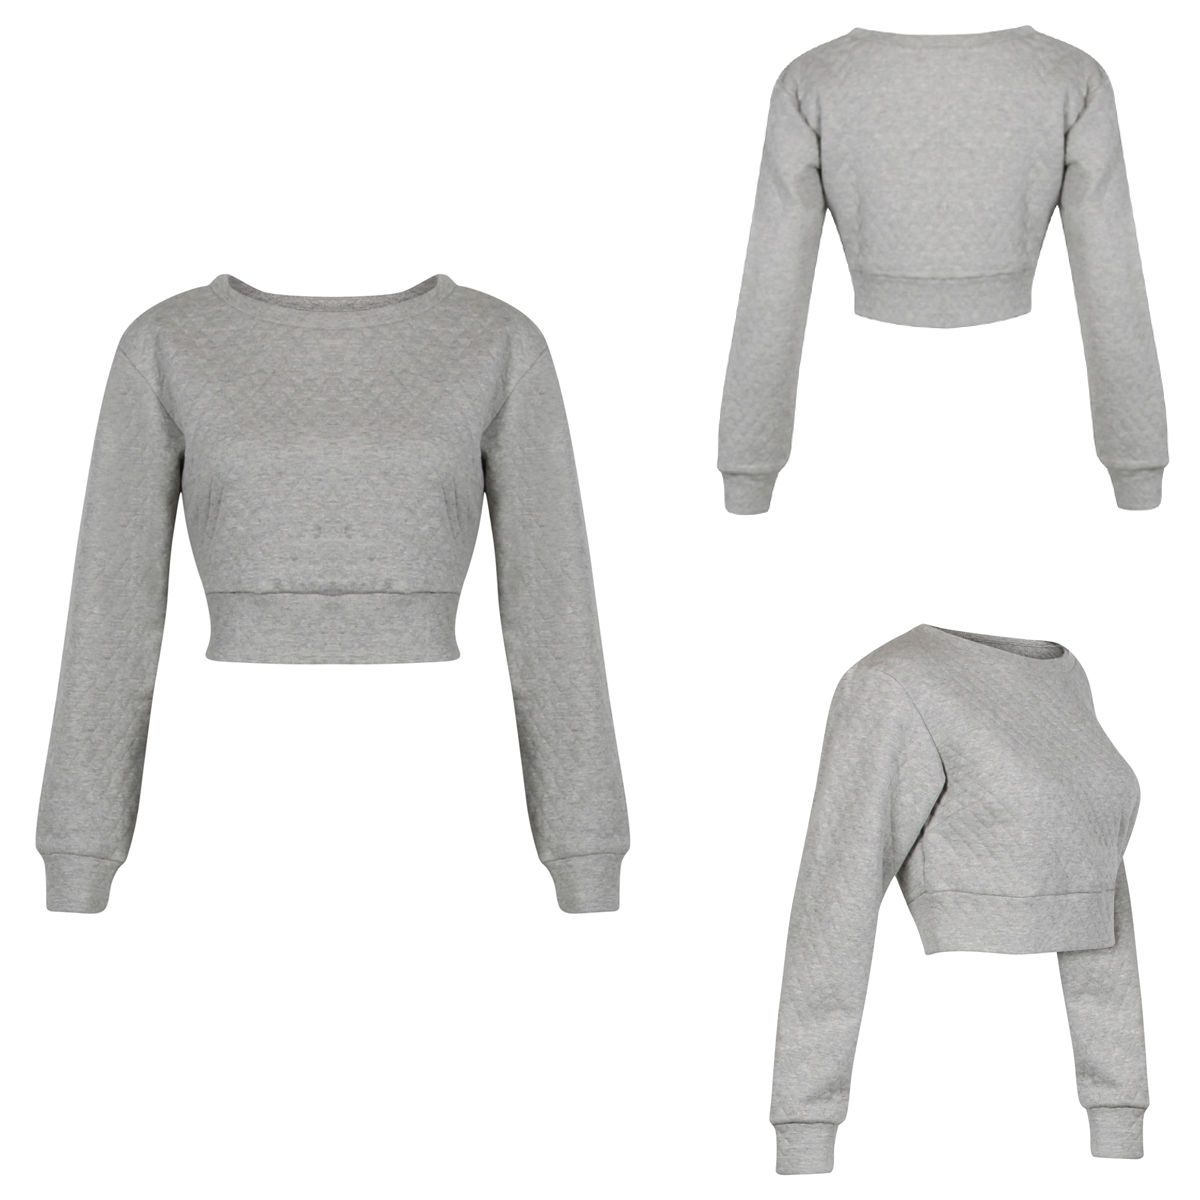 NEW-WOMENS-GLAMOROUS-GREY-QUILTED-CROPPED-SWEATSHIRT-LADIES-JUMPER-TOP